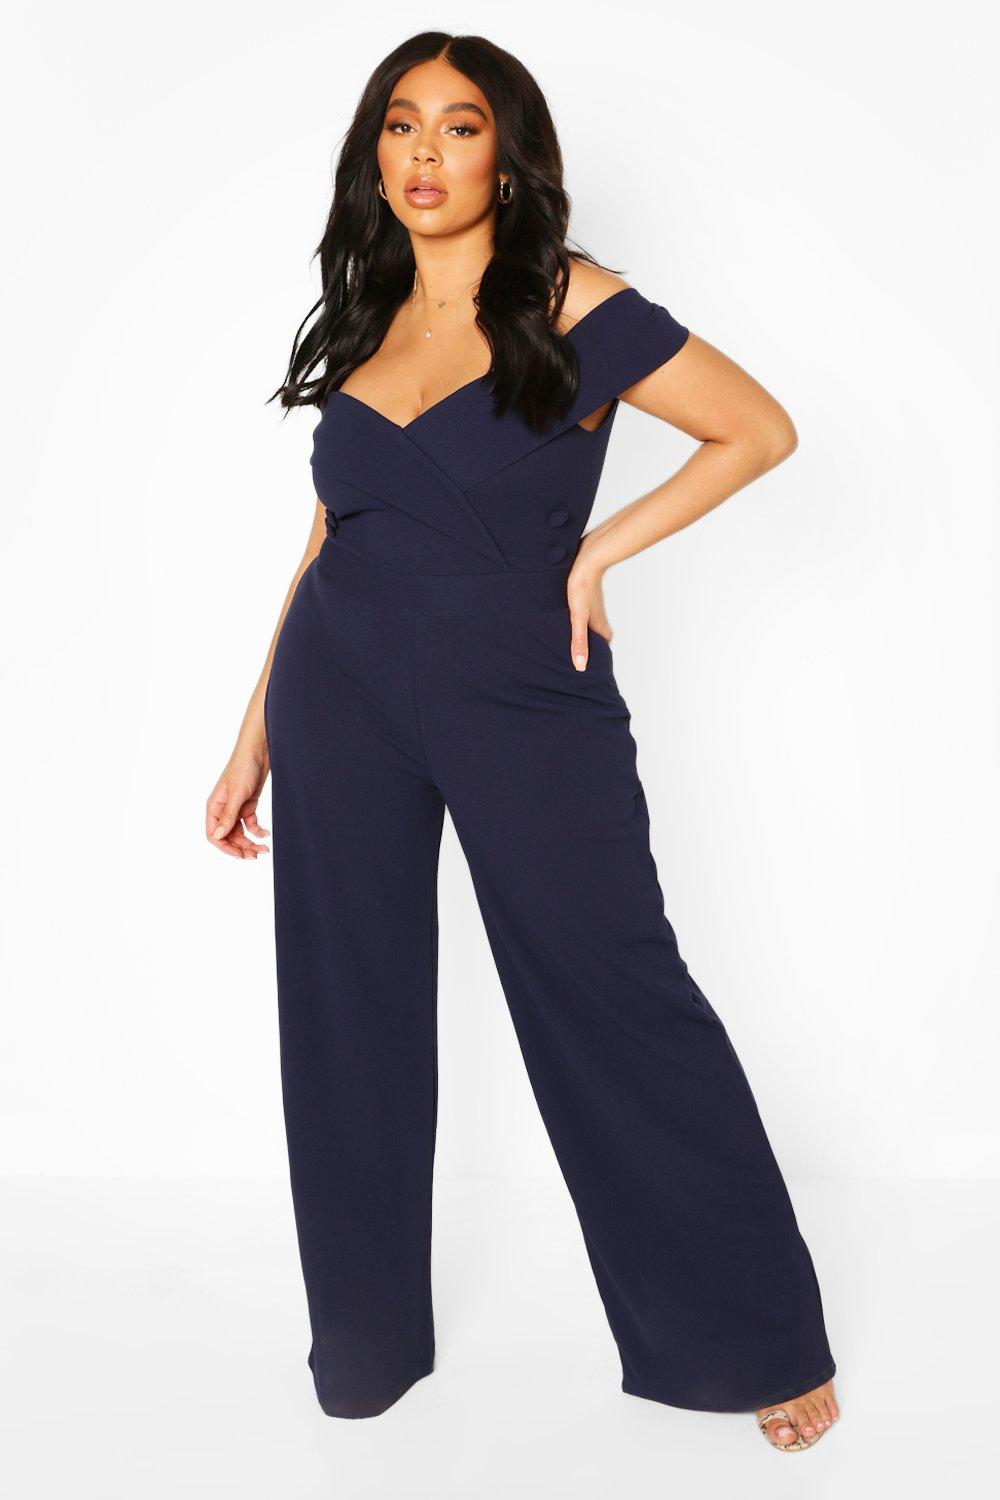 boohoo Womens Plus Bardot Button Detail Jumpsuit - Navy - 20, Navy